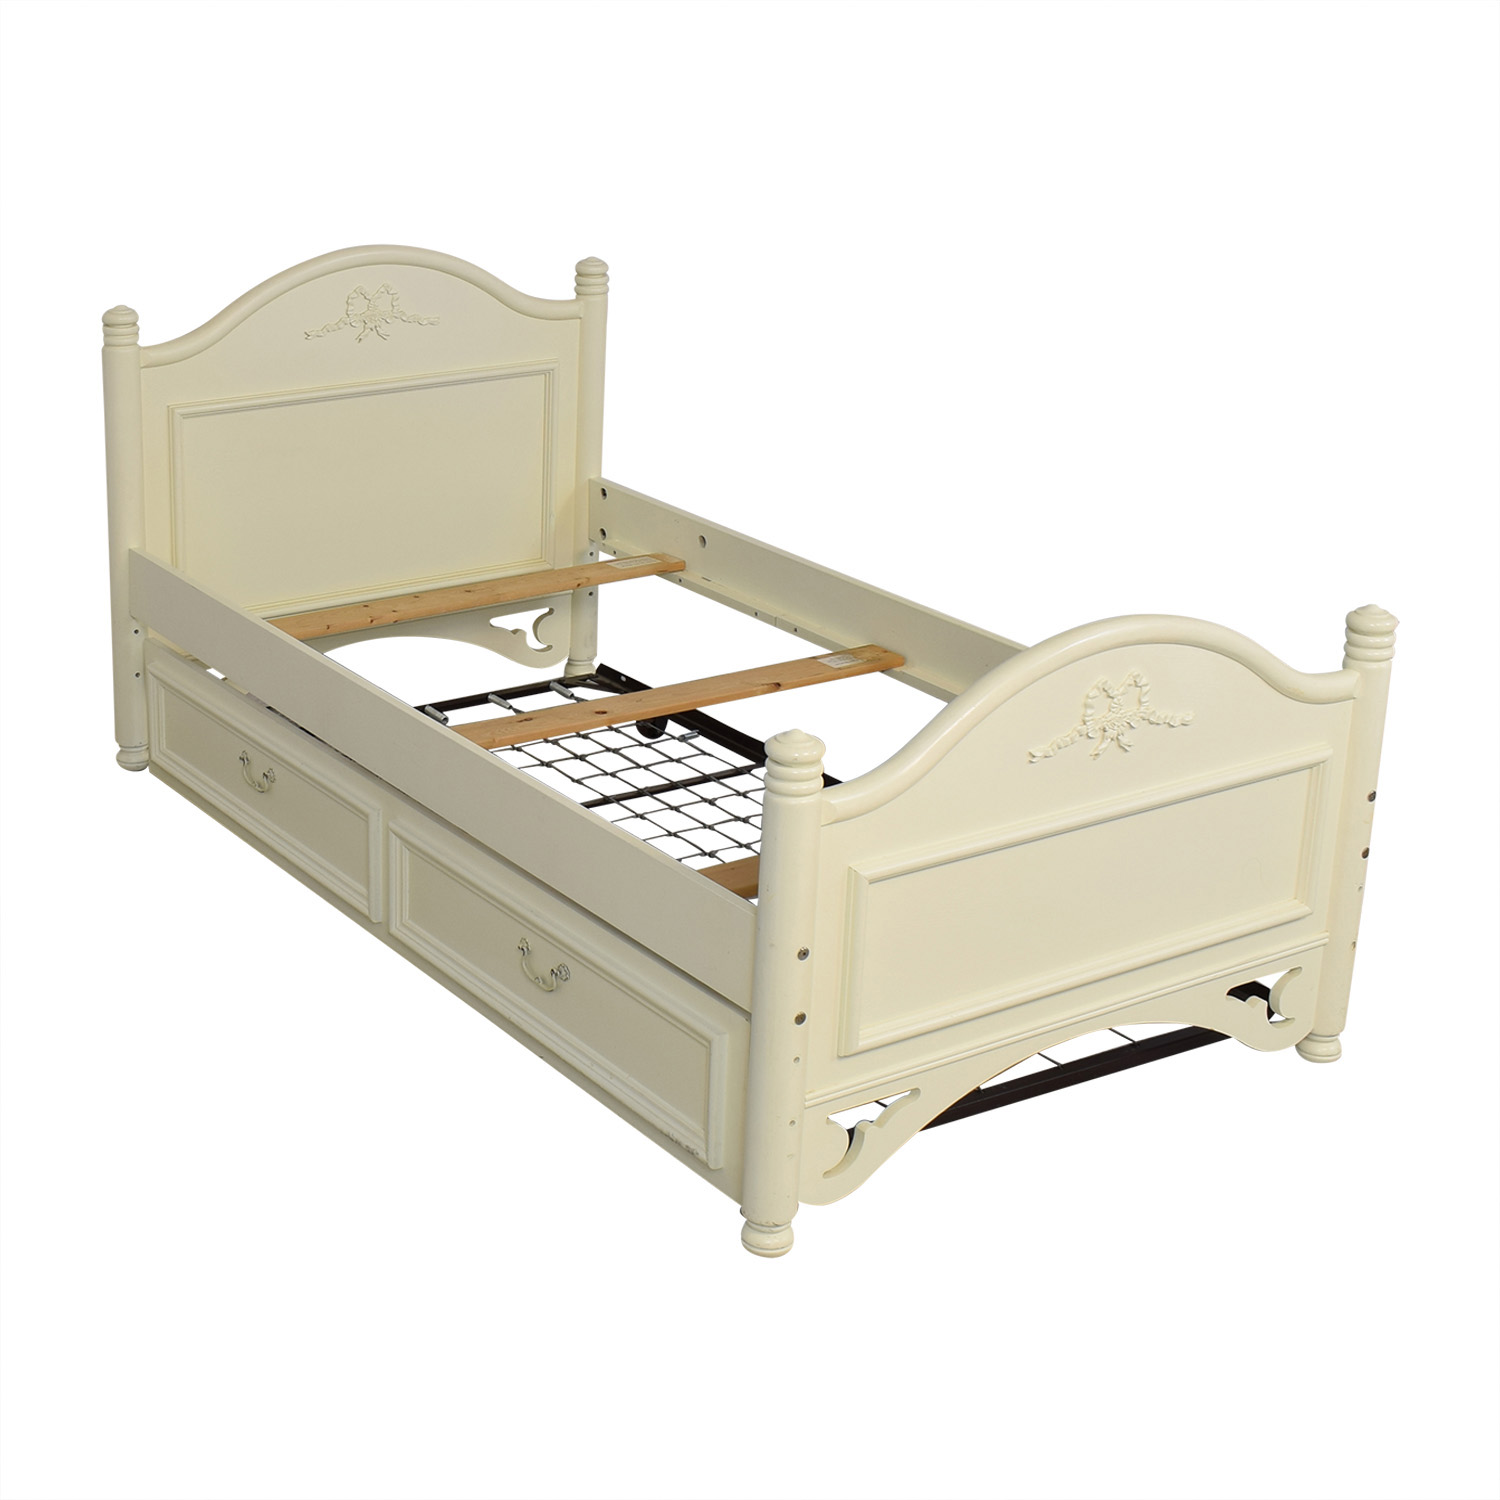 Lexington Furniture Lexington Furniture Twin Bed with Trundle dimensions